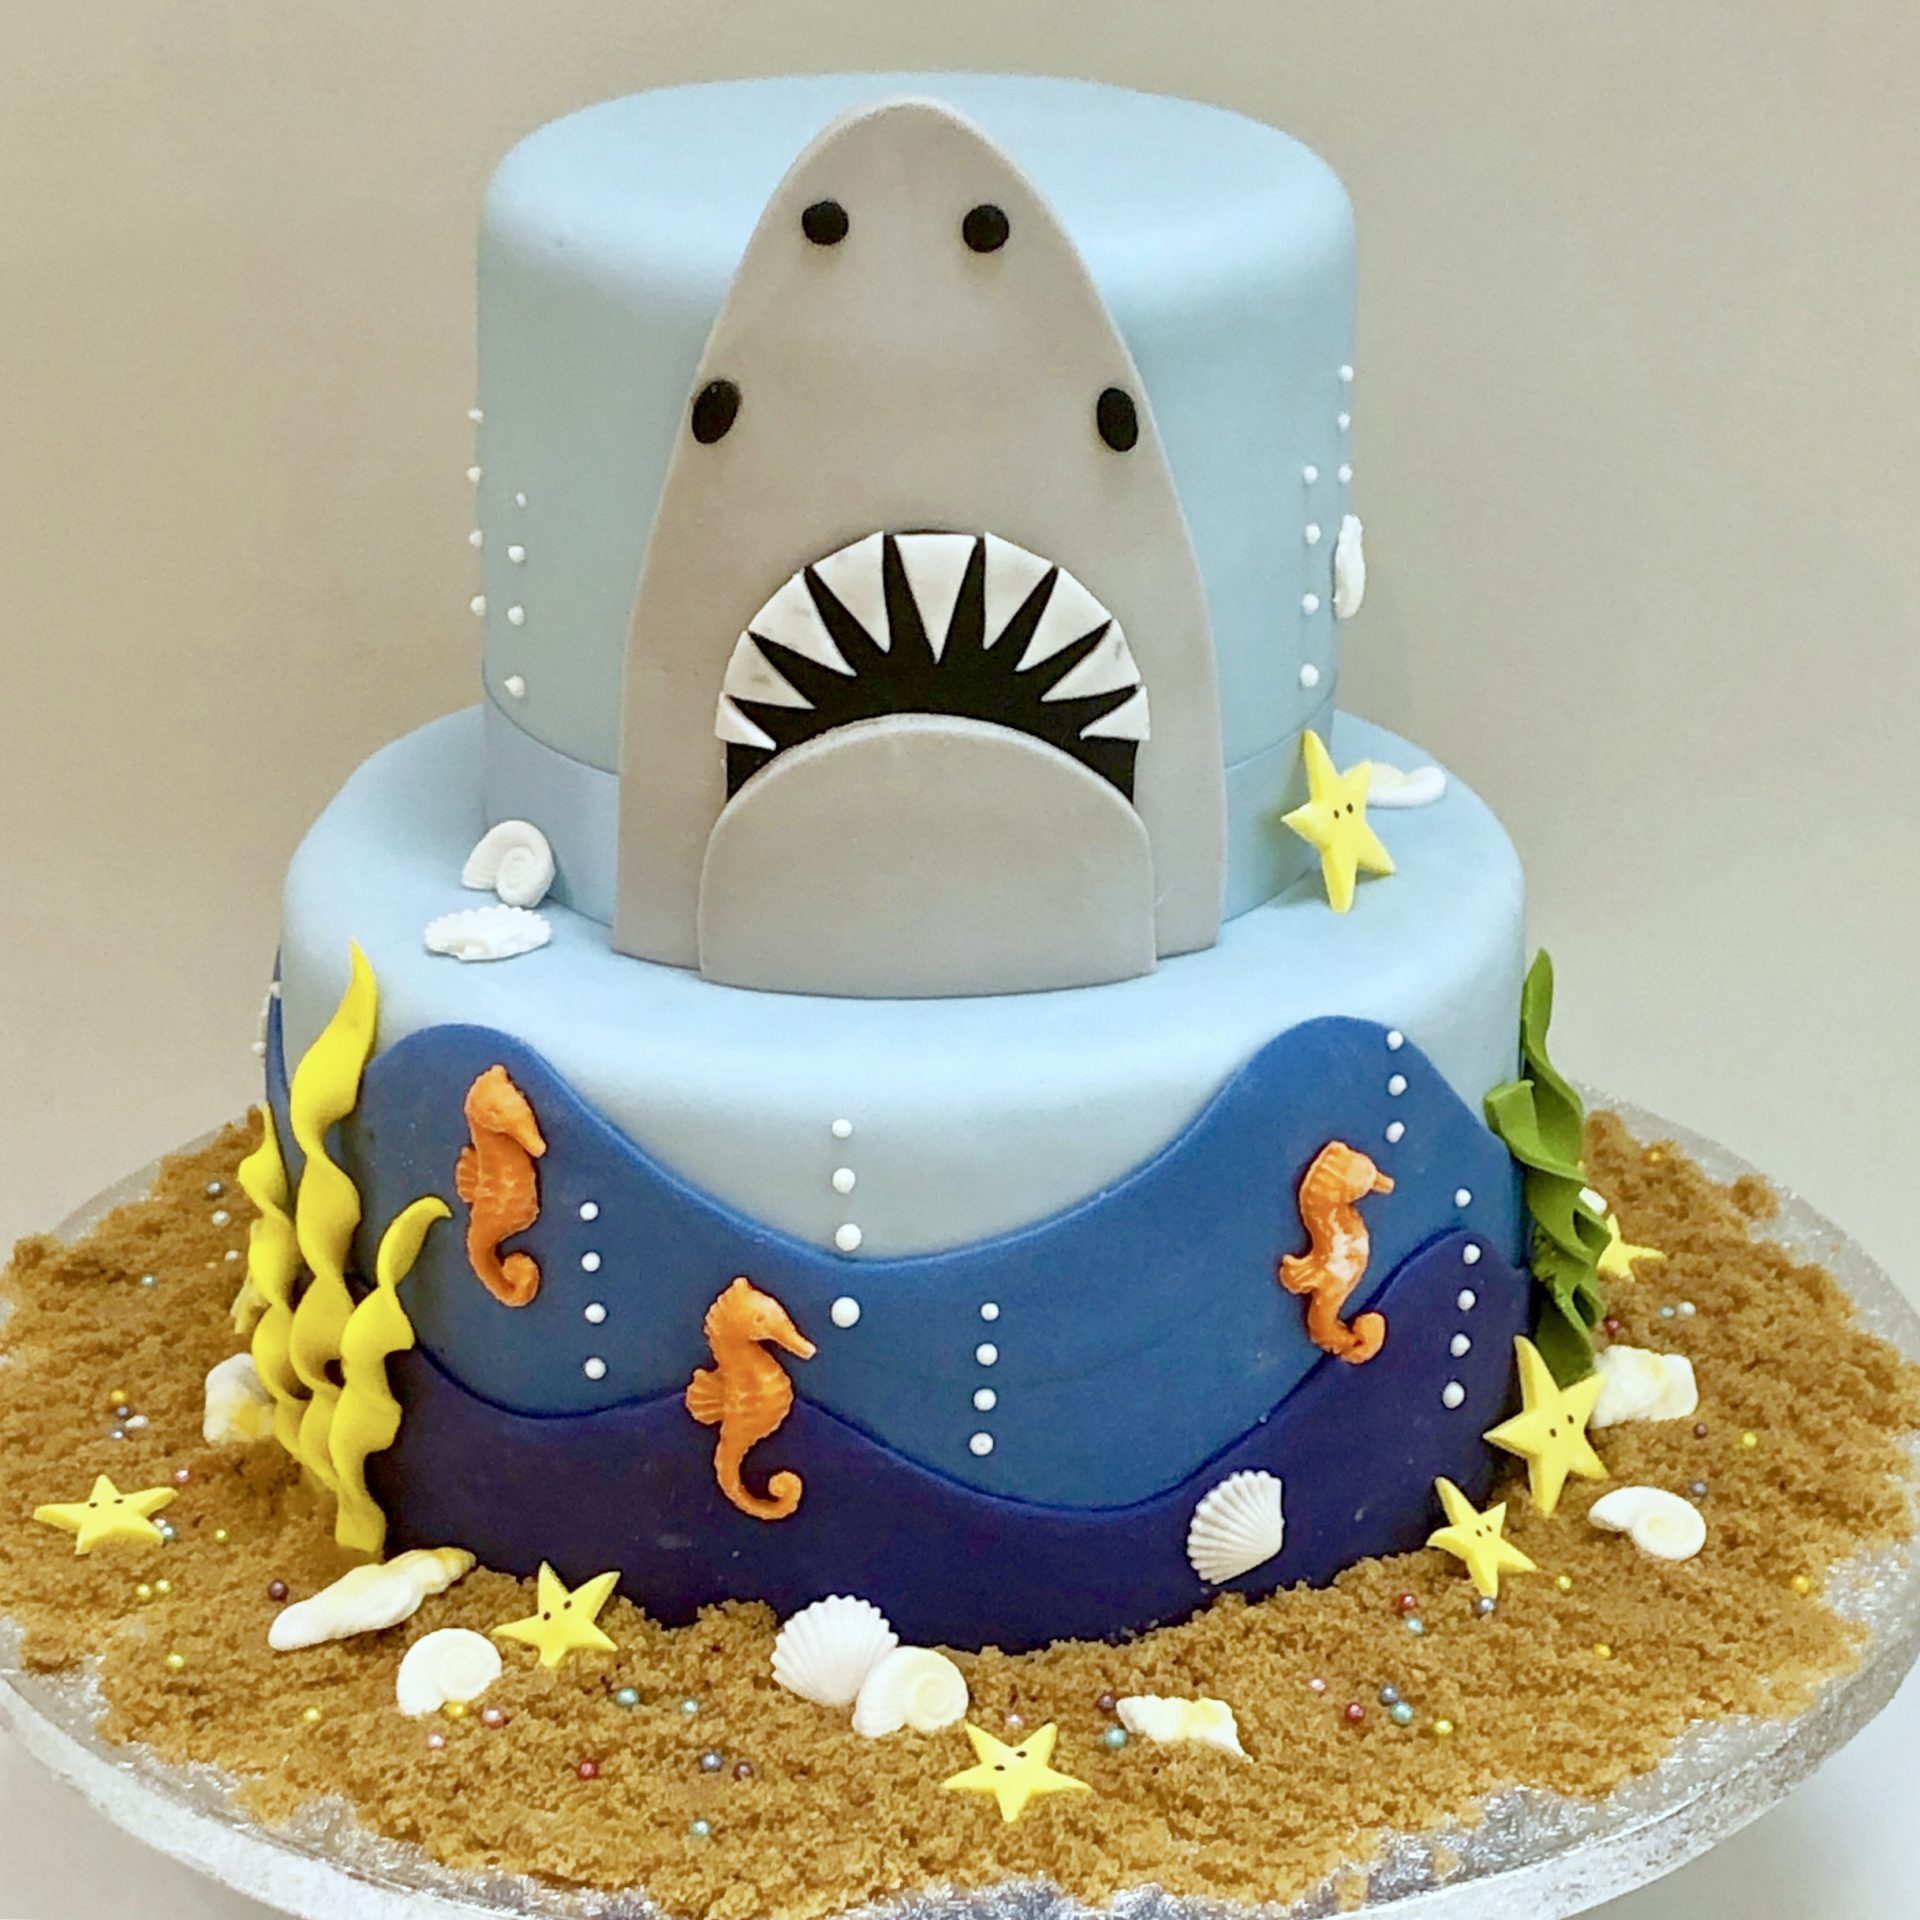 Incredible Shark Themed Birthday Cake Etoile Bakery Funny Birthday Cards Online Fluifree Goldxyz